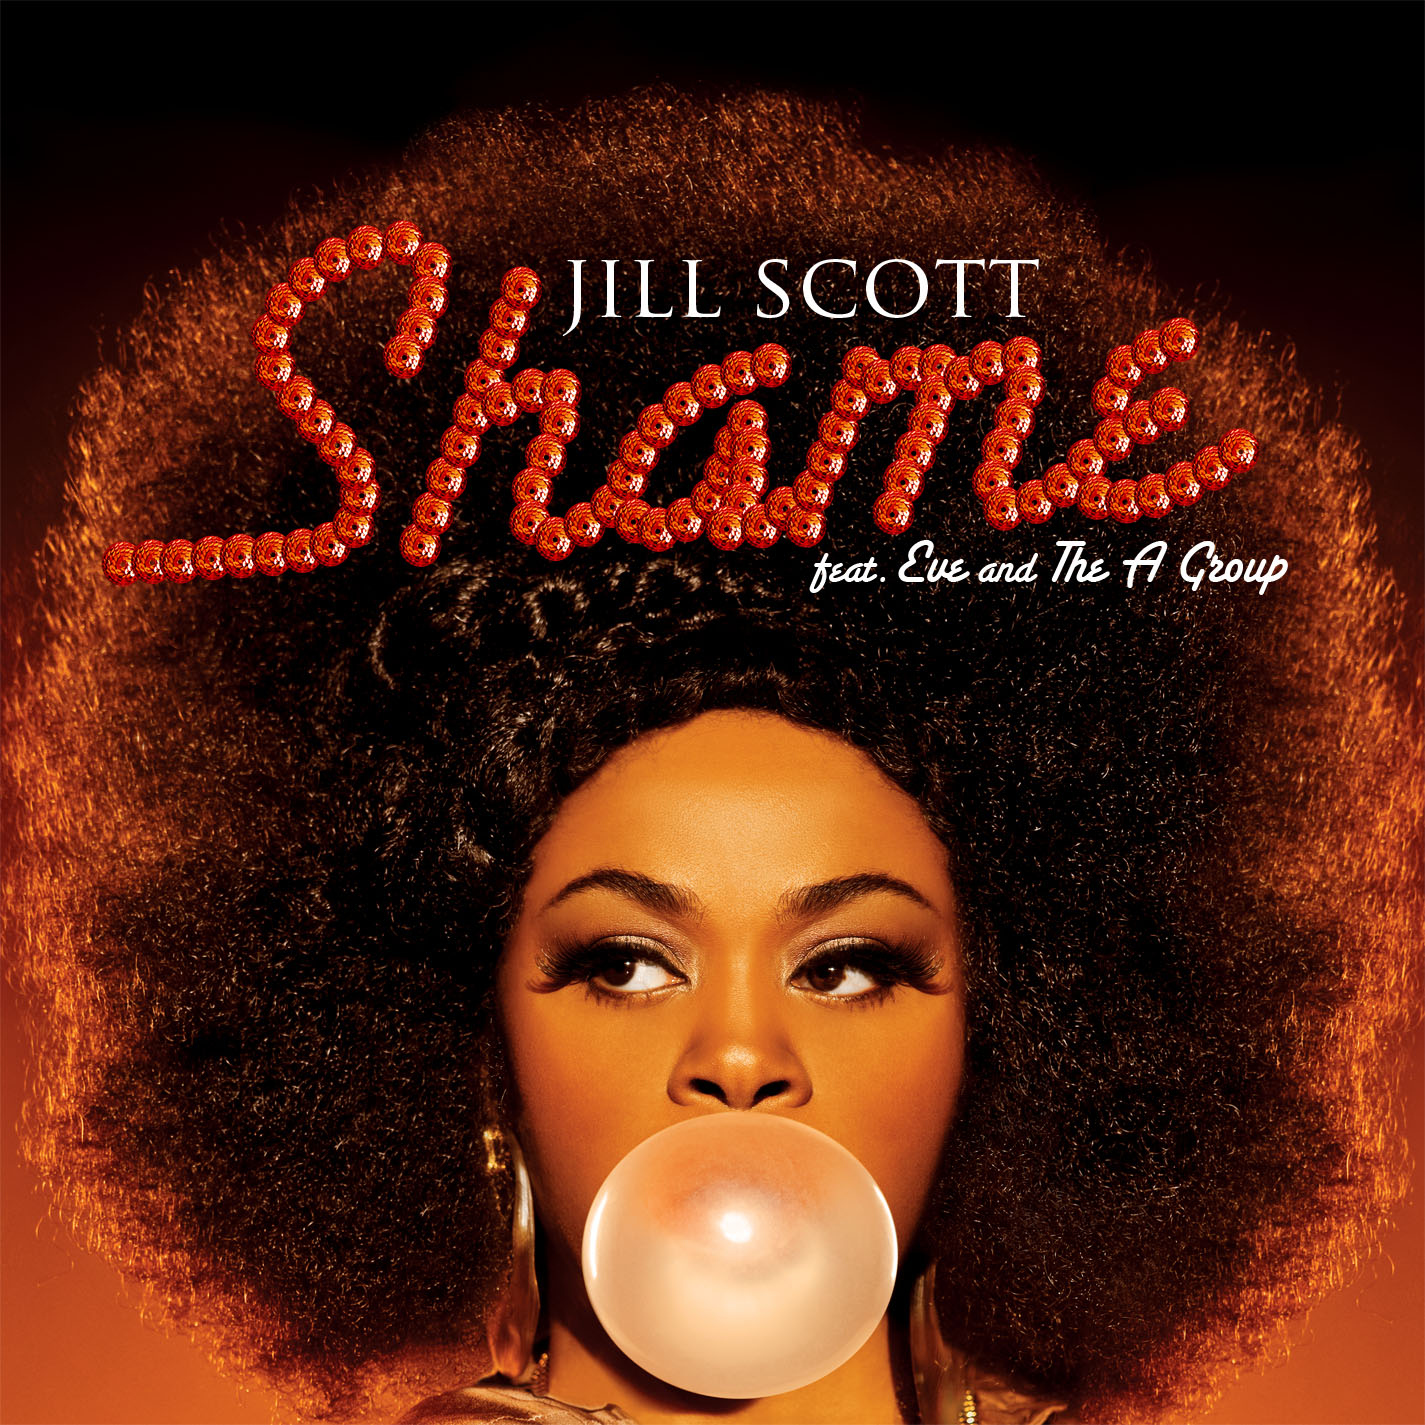 DID YOU KNOW? Ft. Jill Scott